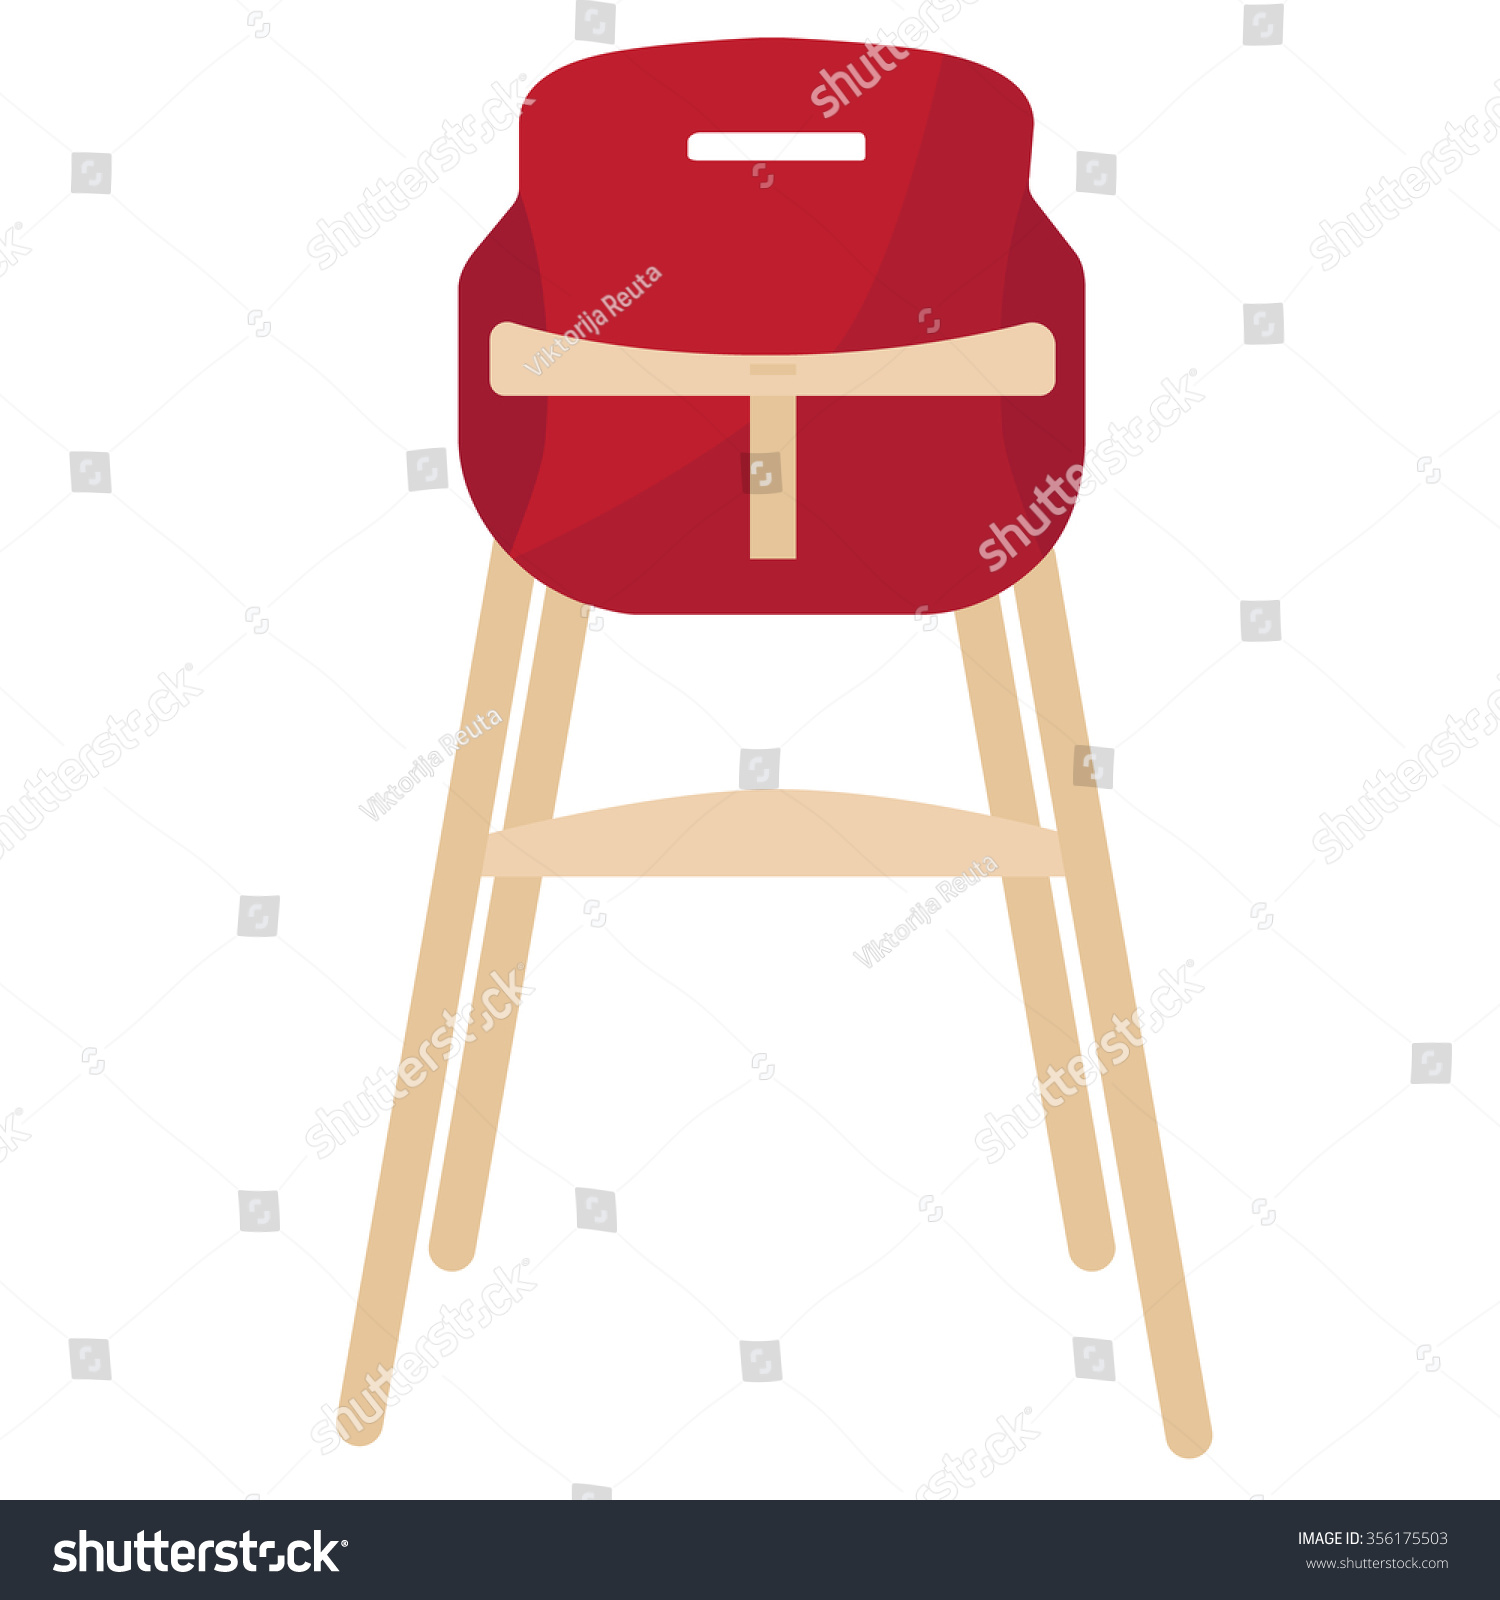 Vector Illustration Red Baby Chair Feeding Stock Vector